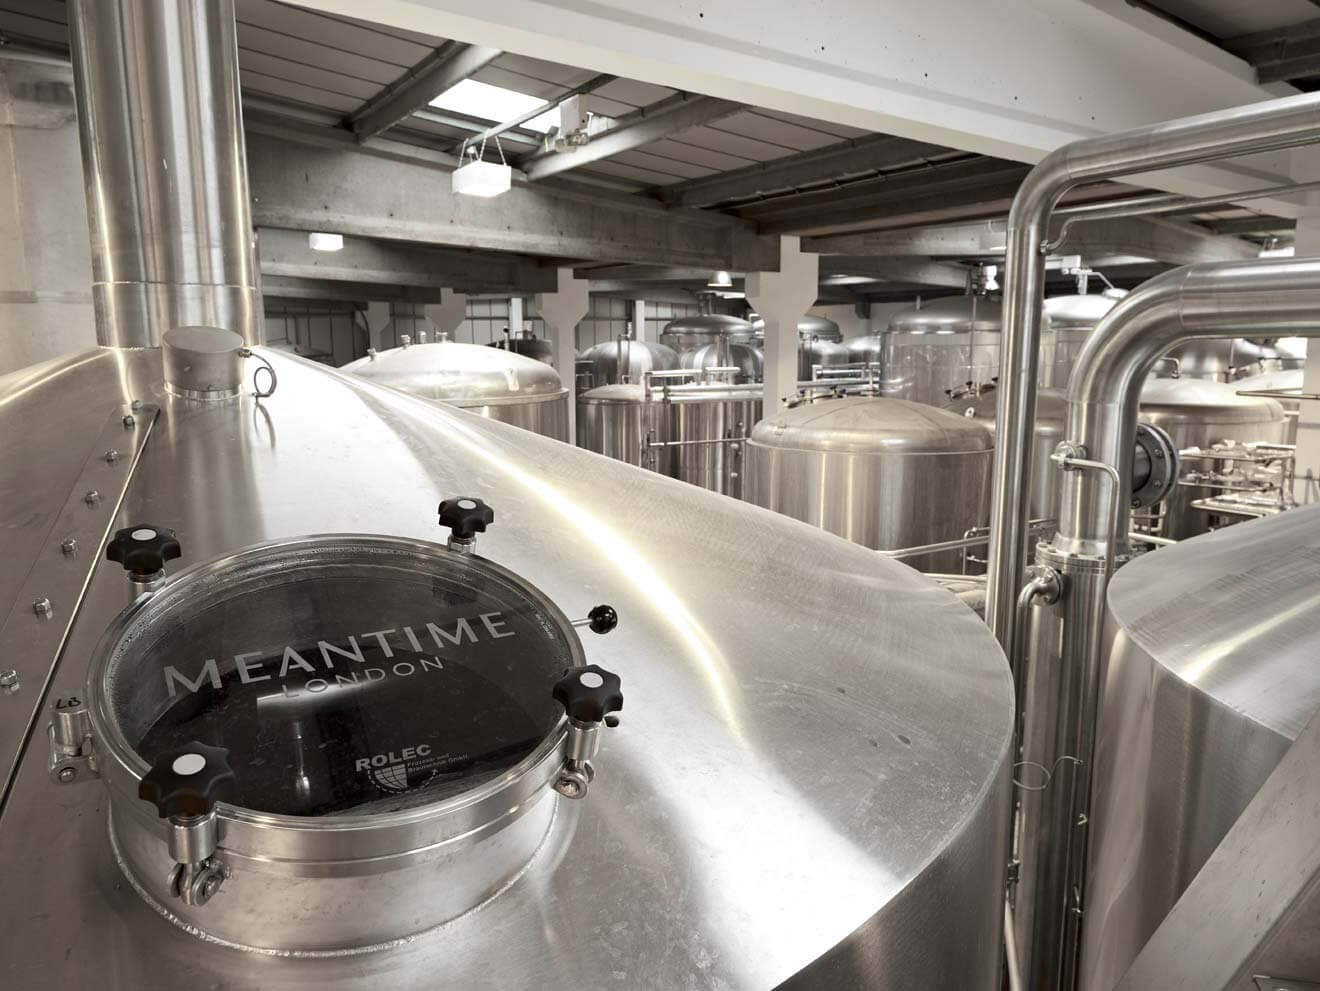 Meantime_London_Brewery_3